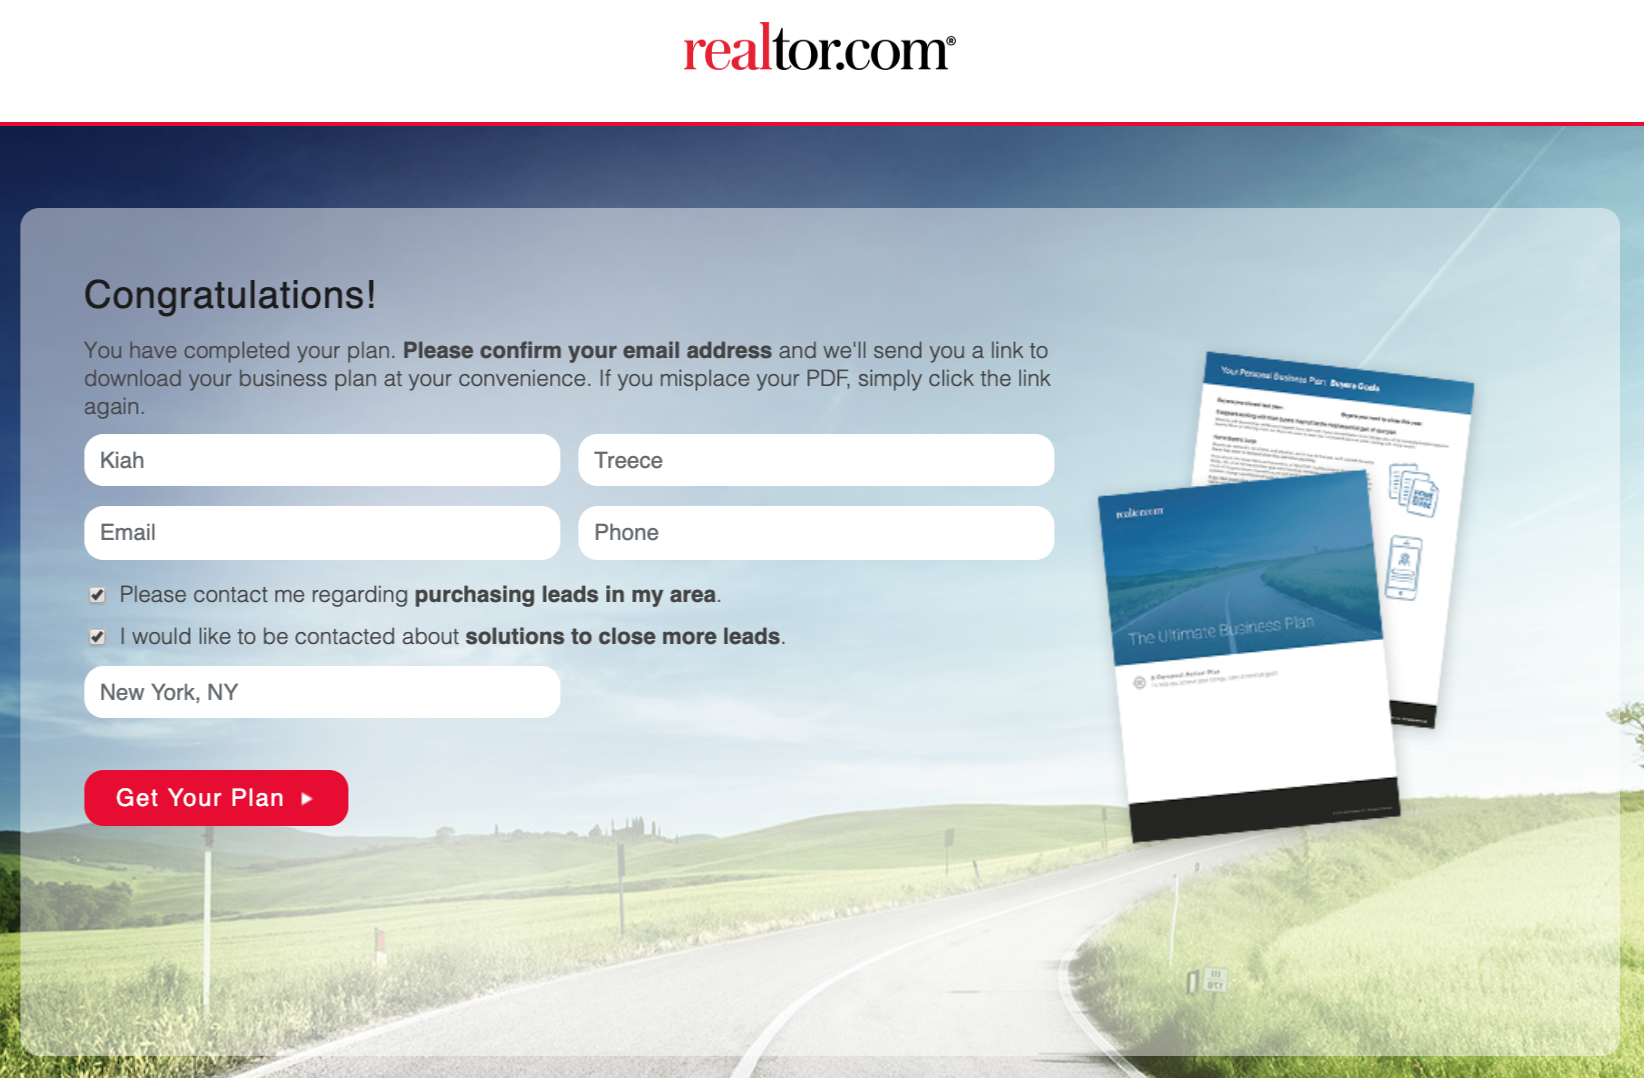 screenshot of the confirmation page of realtor.com's ultimate business plan